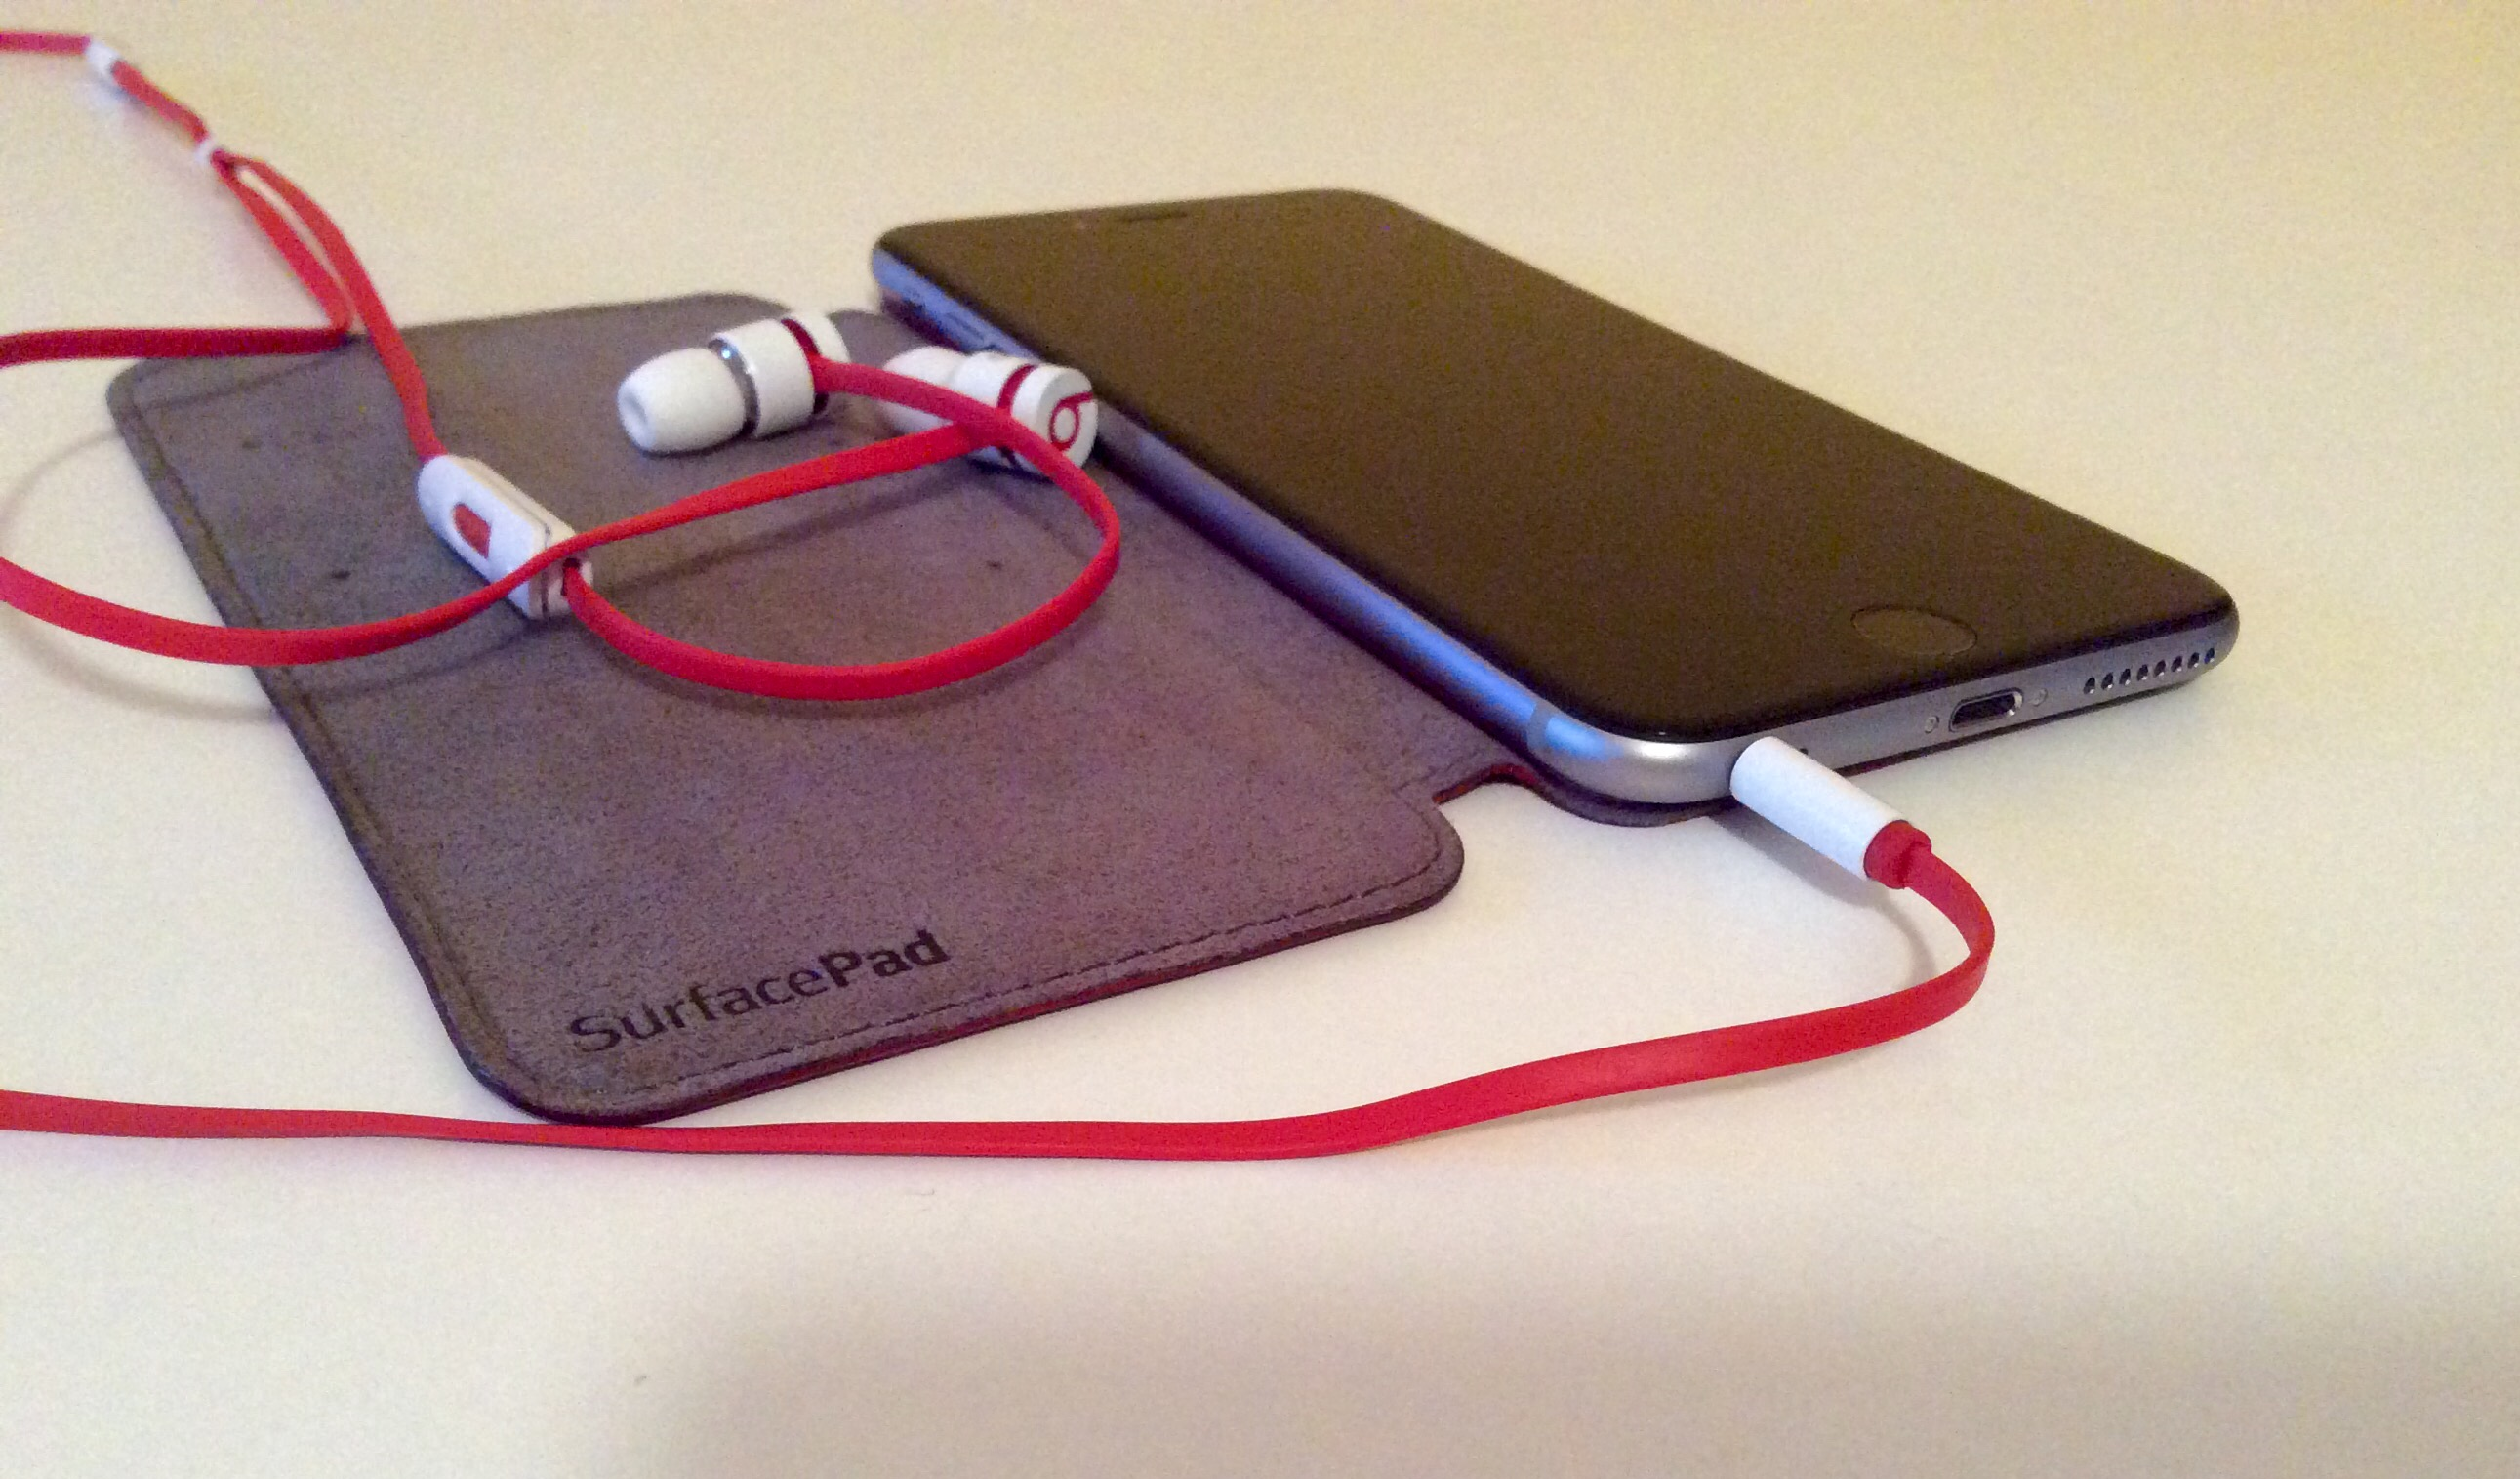 Review: Twelve South SurfacePad, a stylish coupler for your iPhone 6 and iPhone 6 Plus